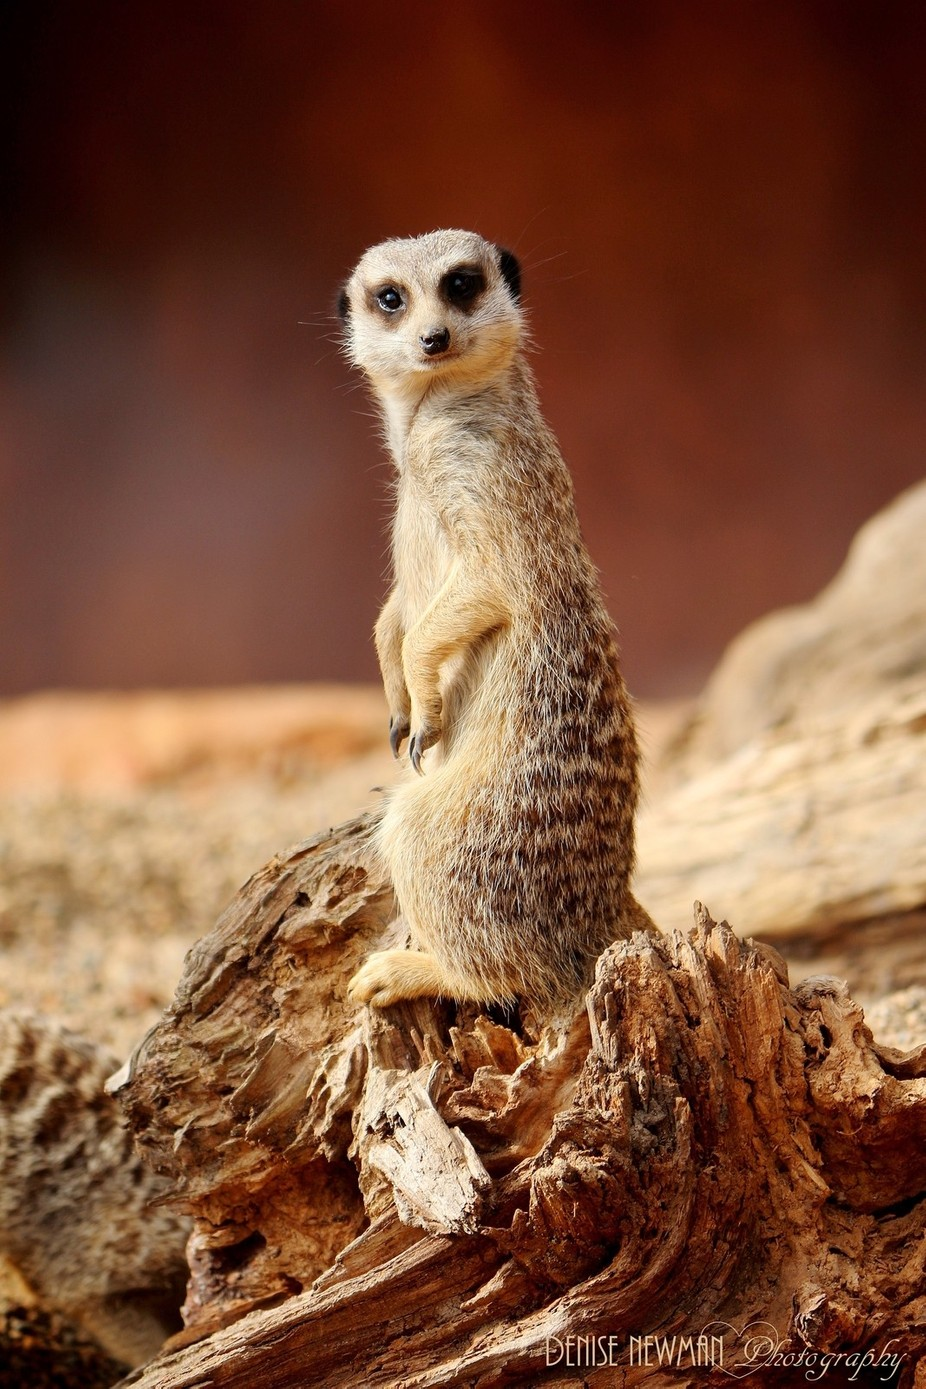 Cautious and wary - Meerkat by denisenewman - Image Of The Month Photo Contest Vol 27